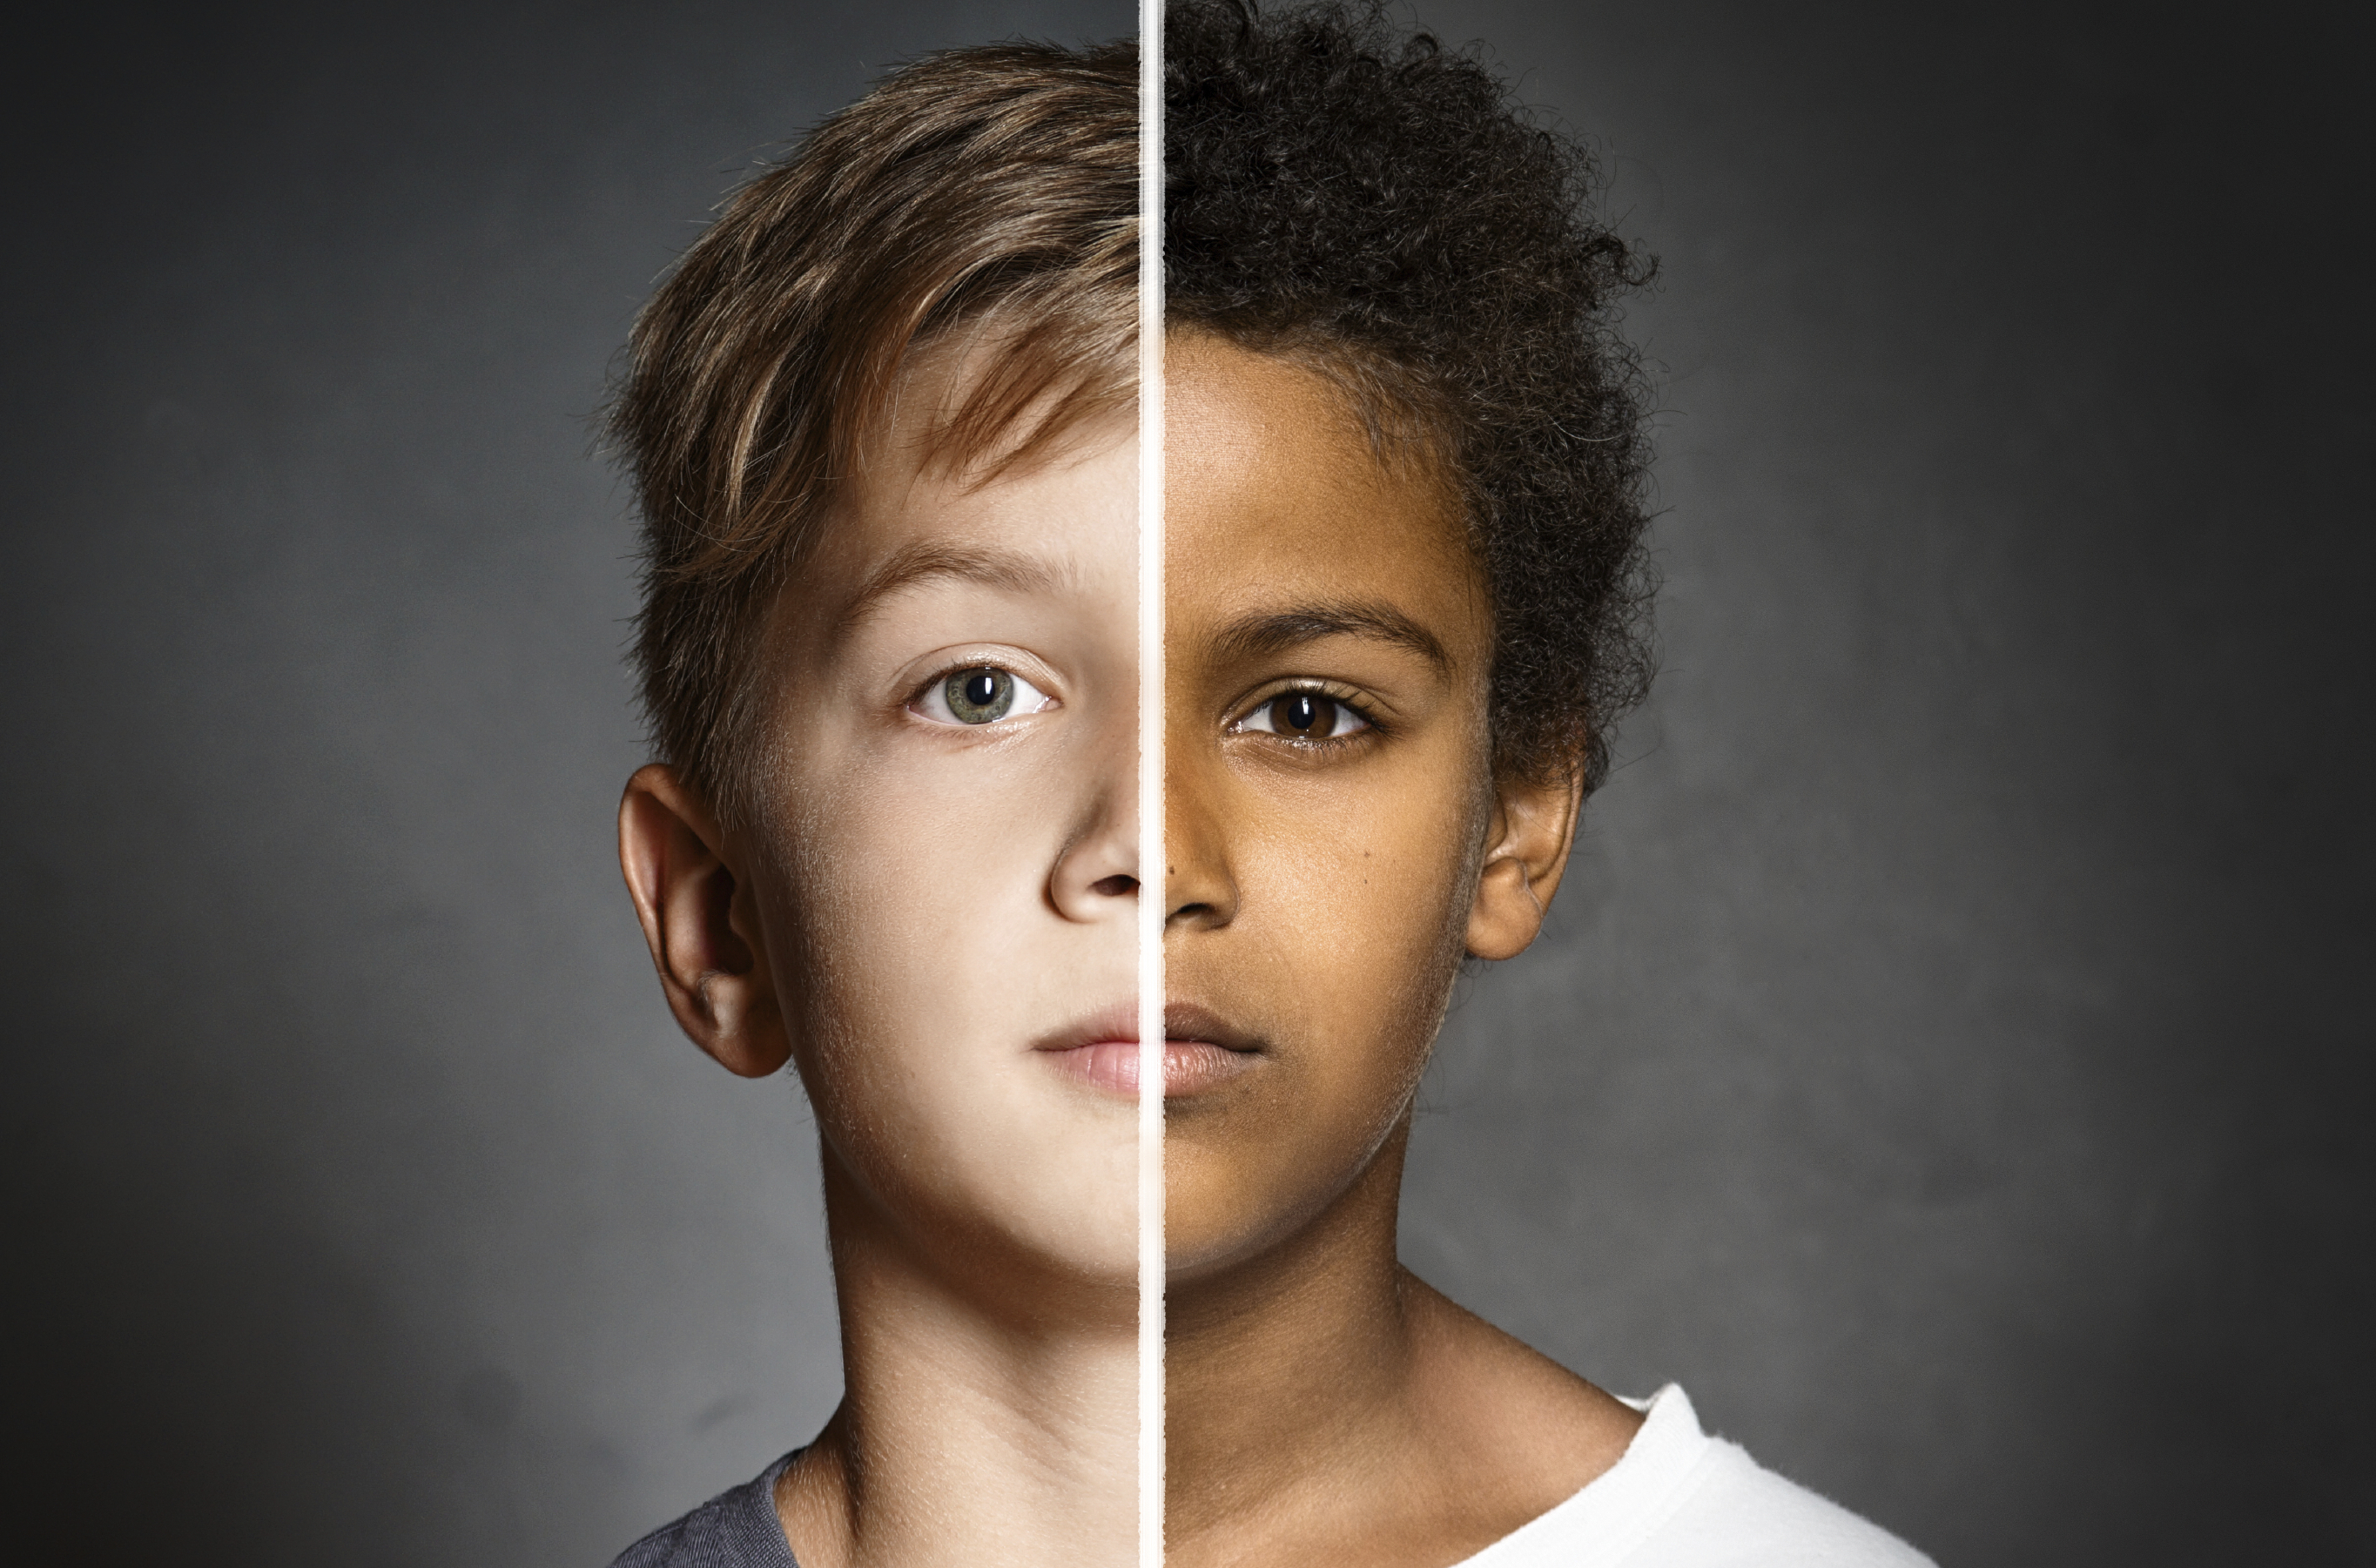 an analysis of the racism in human society